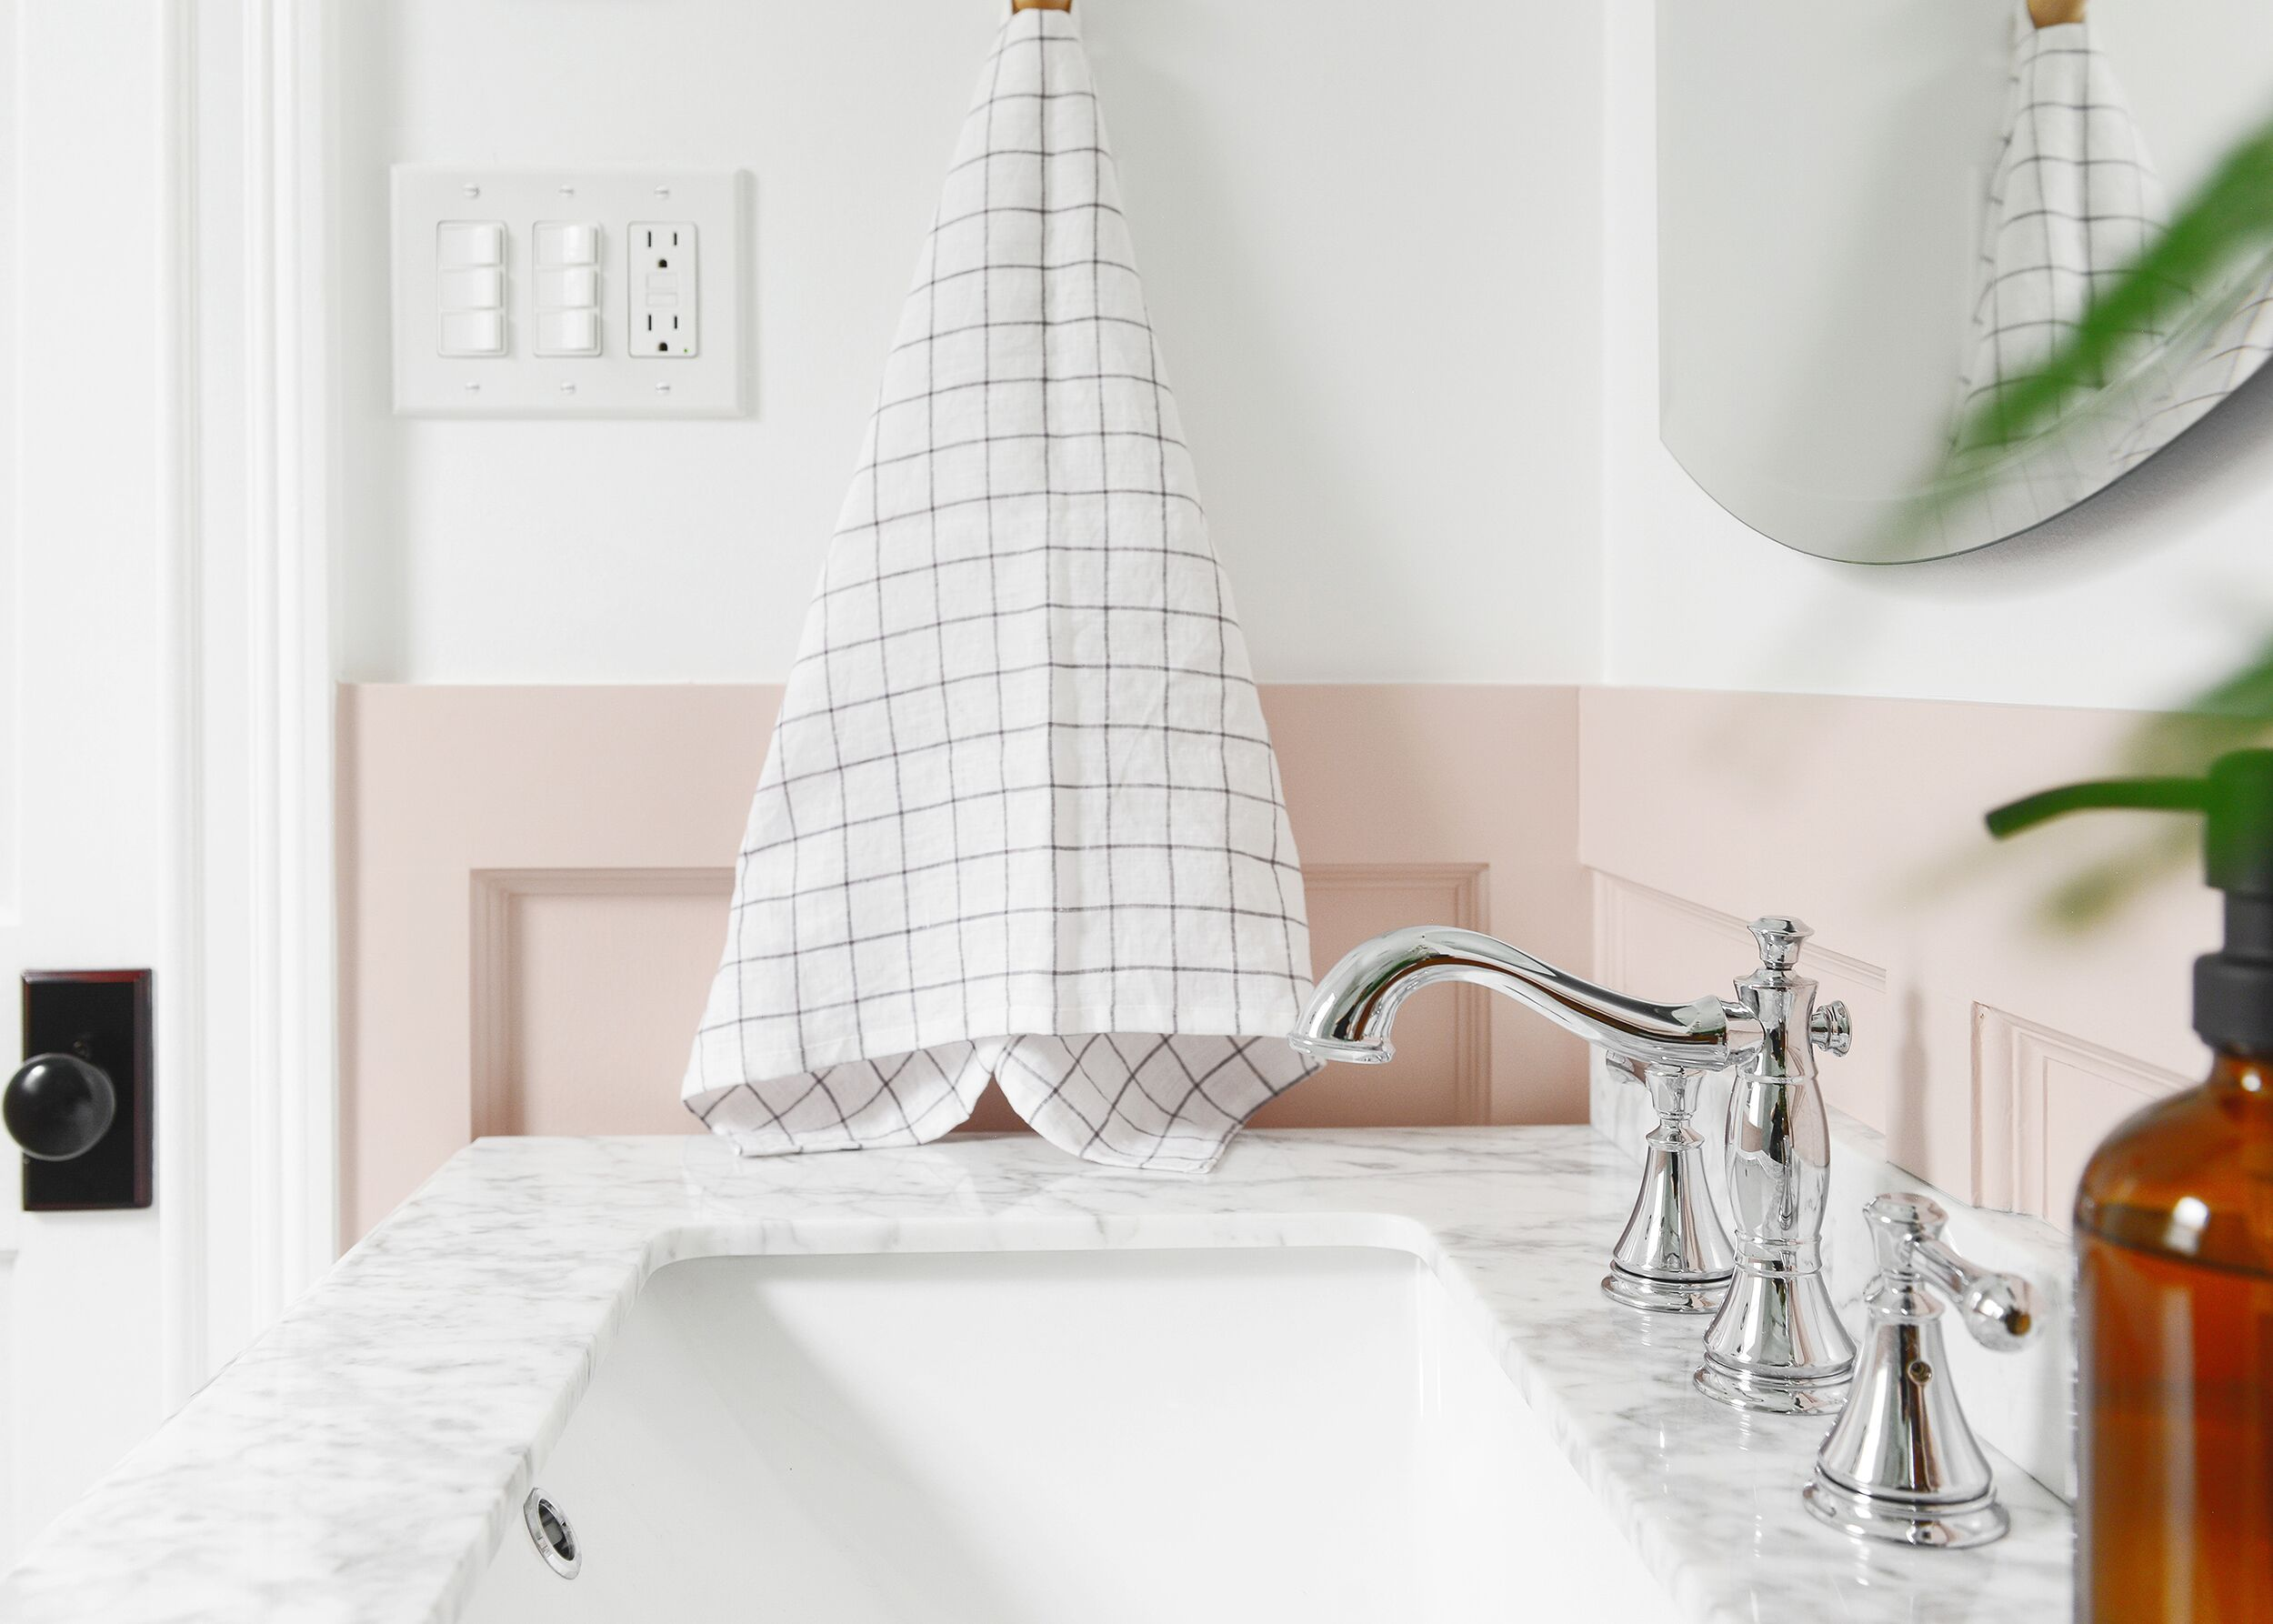 Hand towel with grid pattern hanging in the bathroom adjacent to the mirror